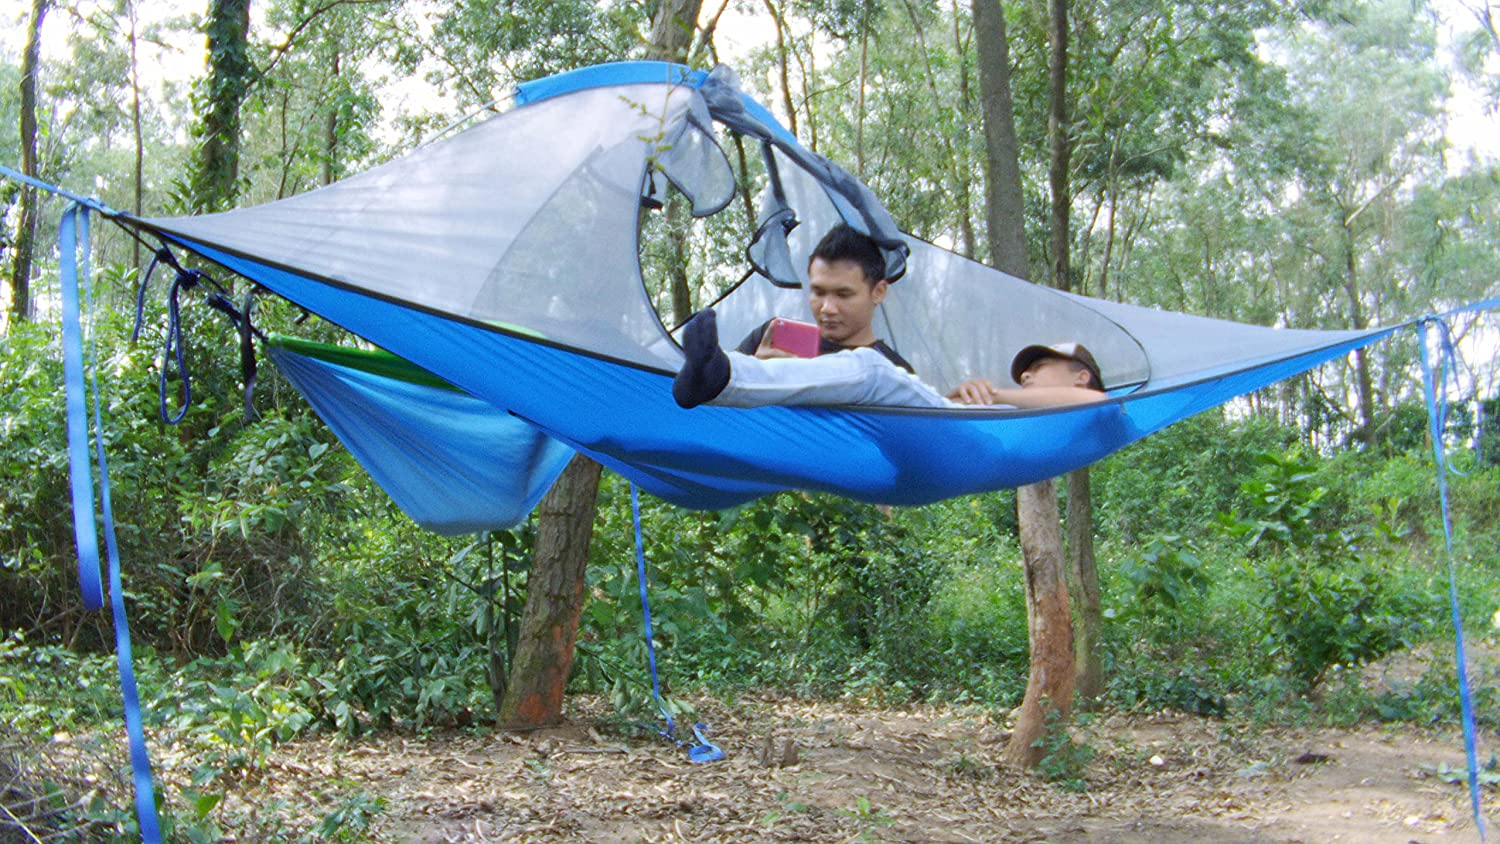 assurance parachute person trade portable camping detail hammock outdoor for product tent